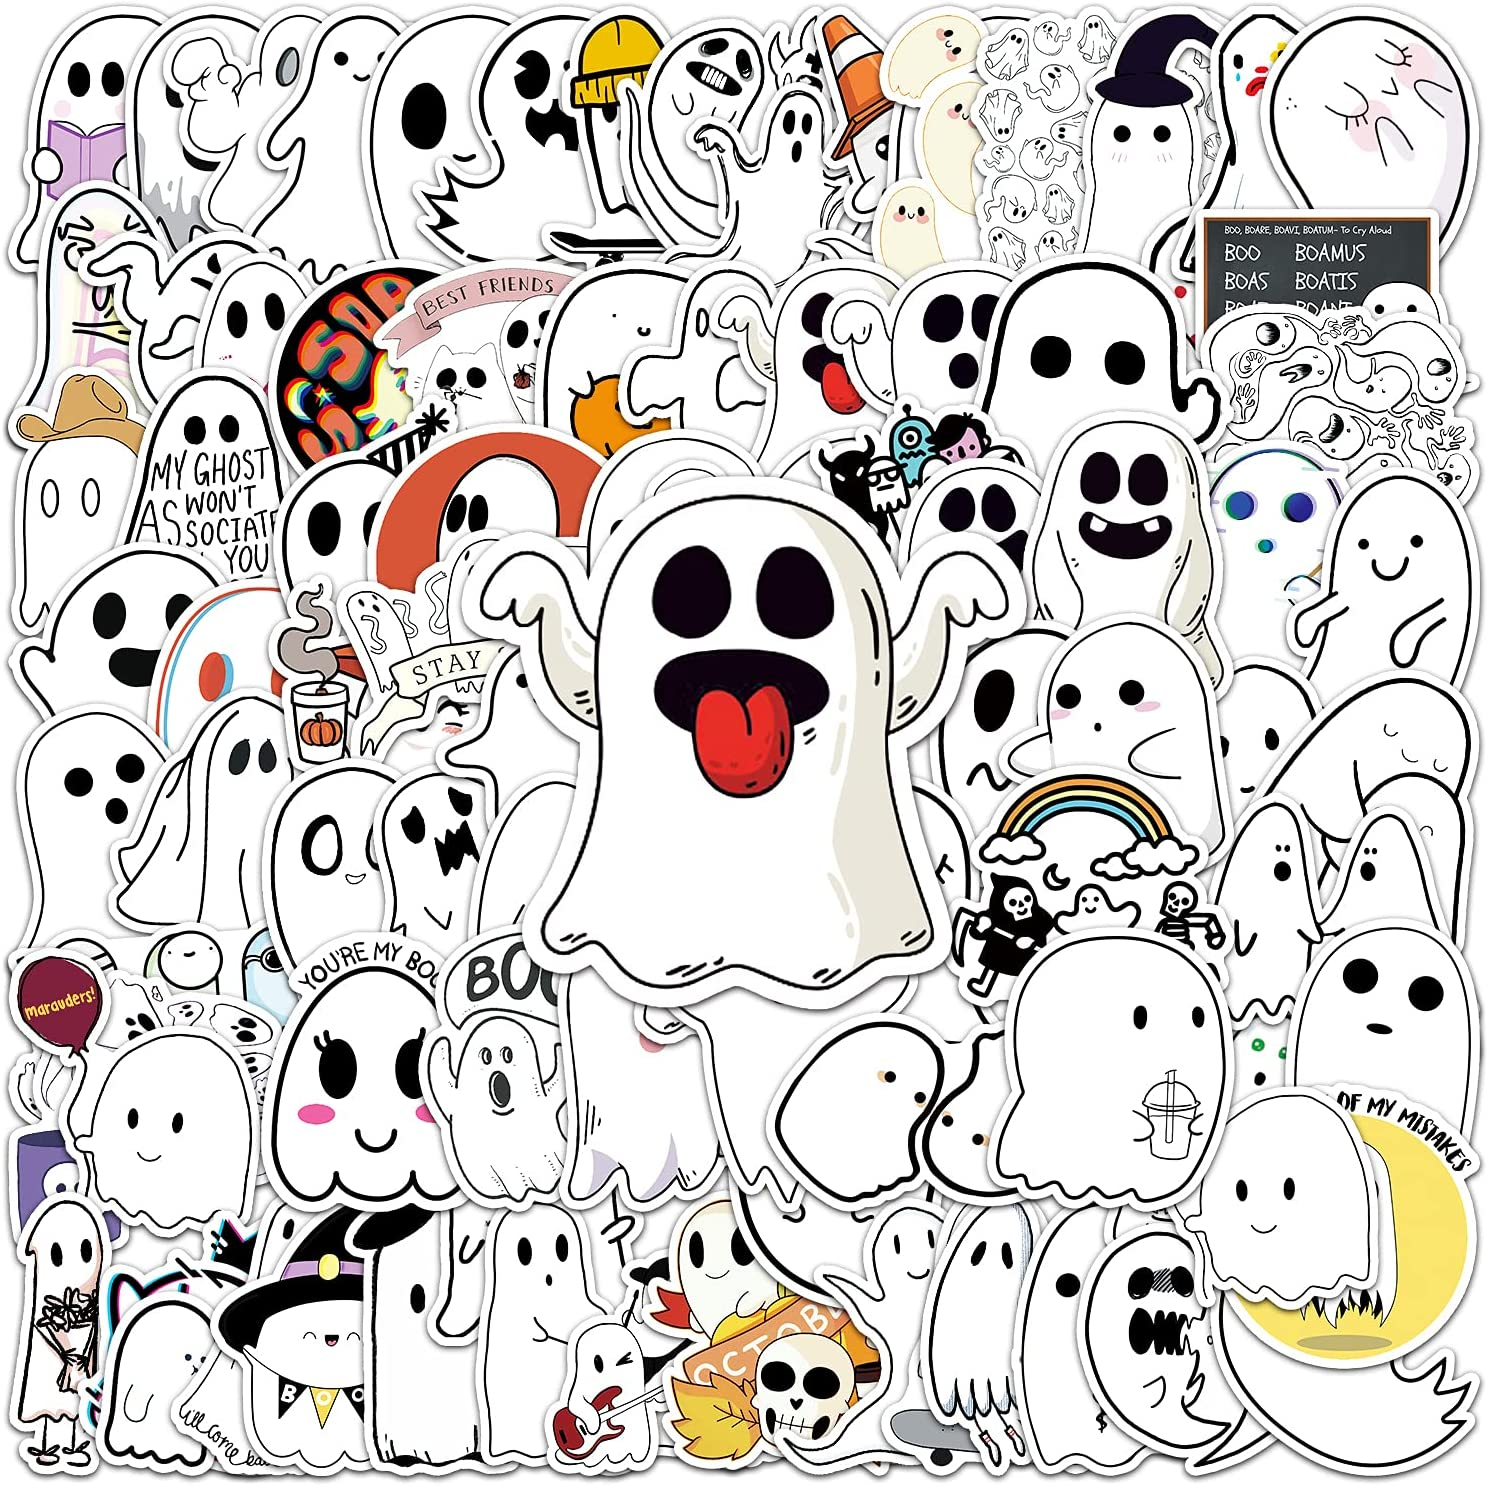 GRACCEE 100PCS Halloween Stickers,Halloween Vinyl Waterproof Cute Ghost Stickers for Laptop Water Bottles Luggage Scrapbook and Gift Decor Stickers